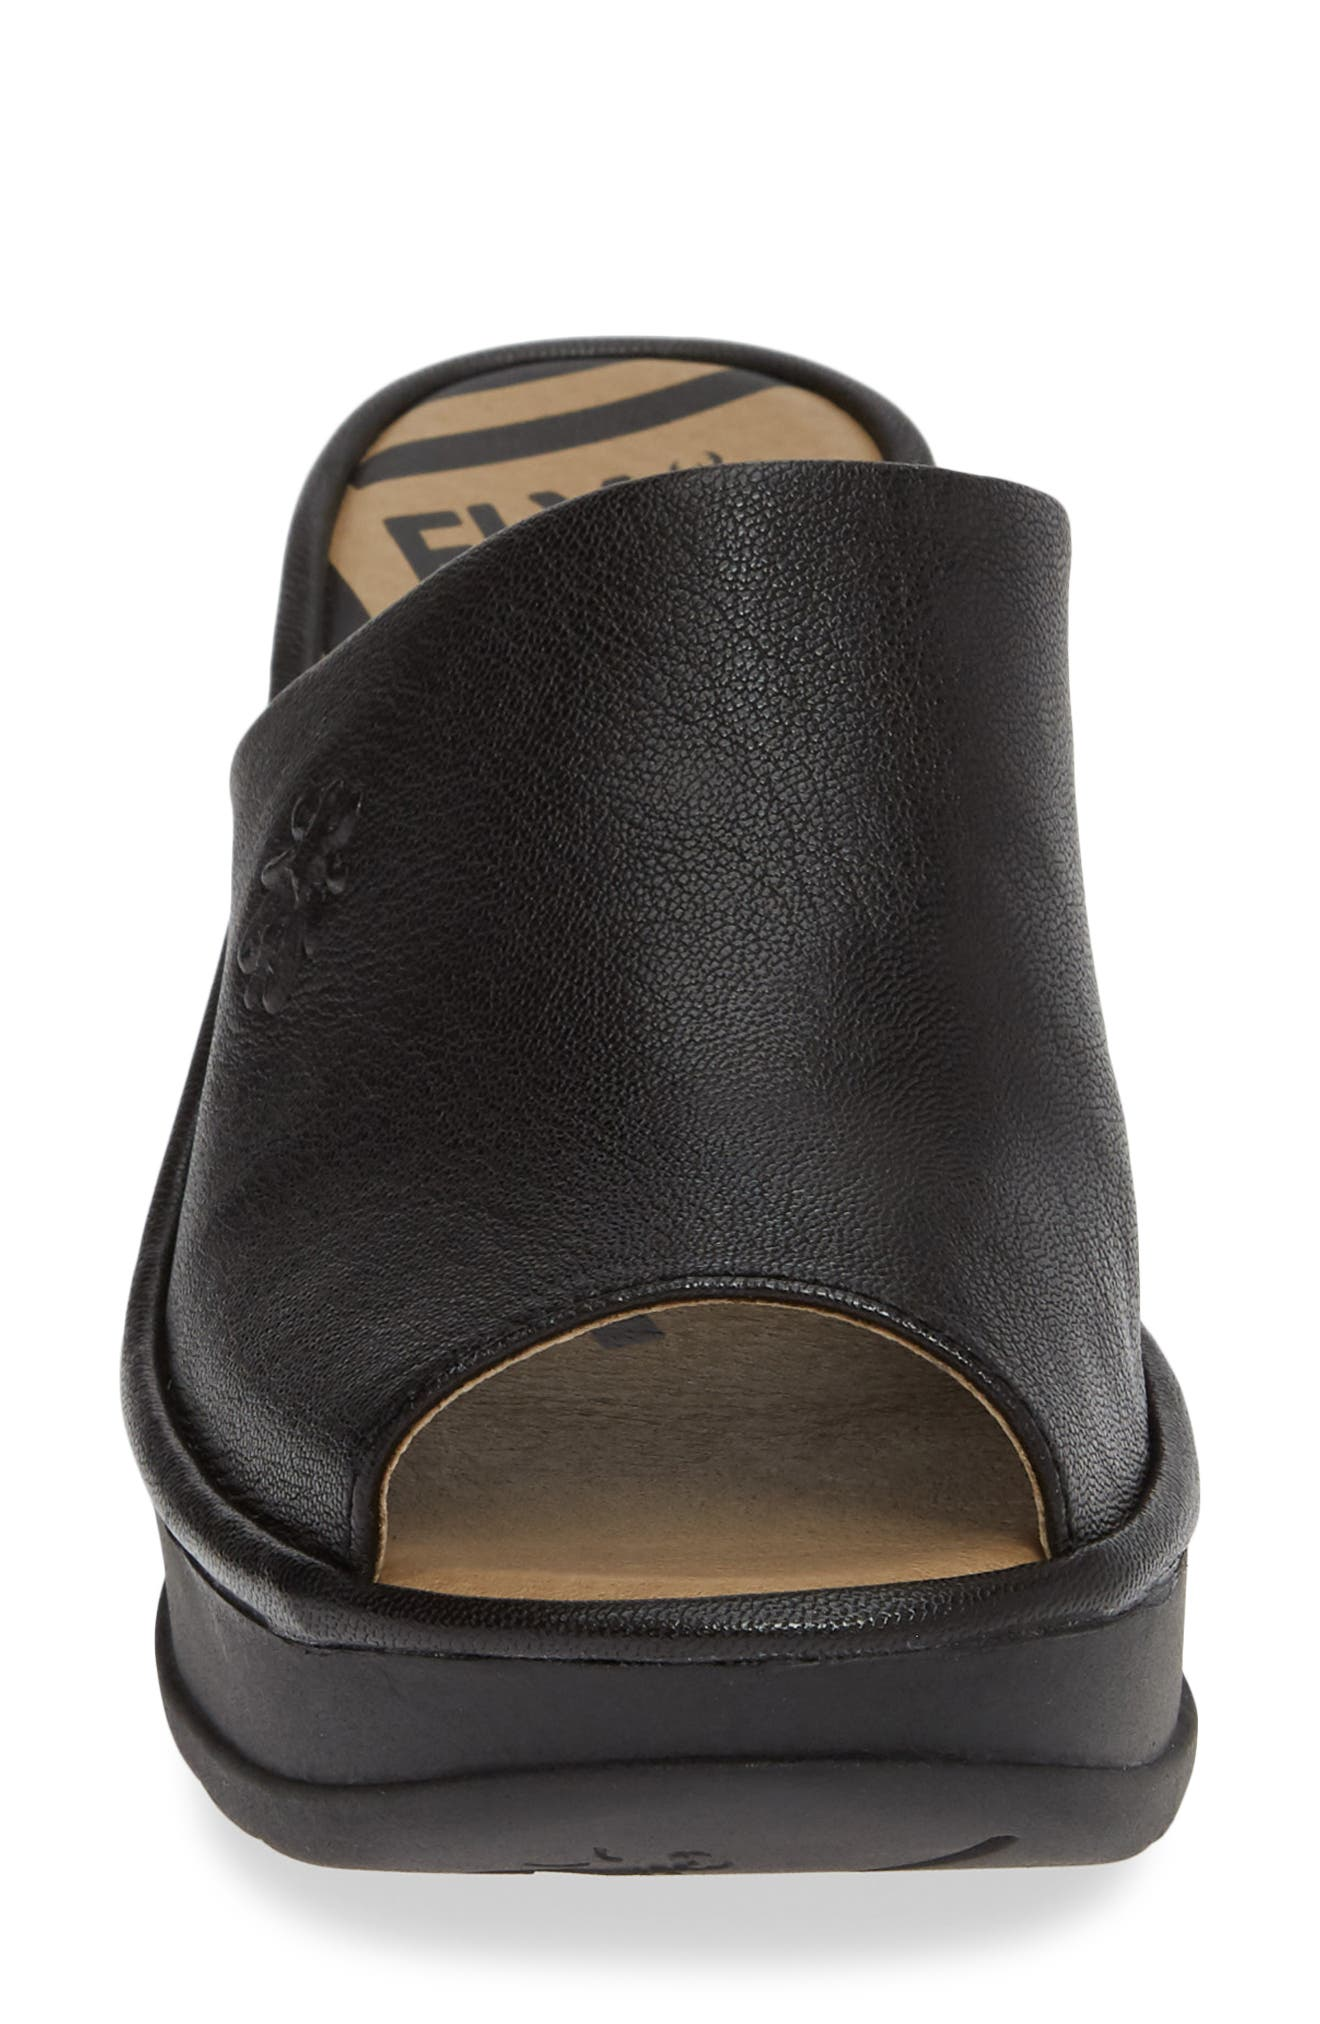 FLY LONDON, Jamb Wedge Slide Sandal, Alternate thumbnail 4, color, BLACK LEATHER